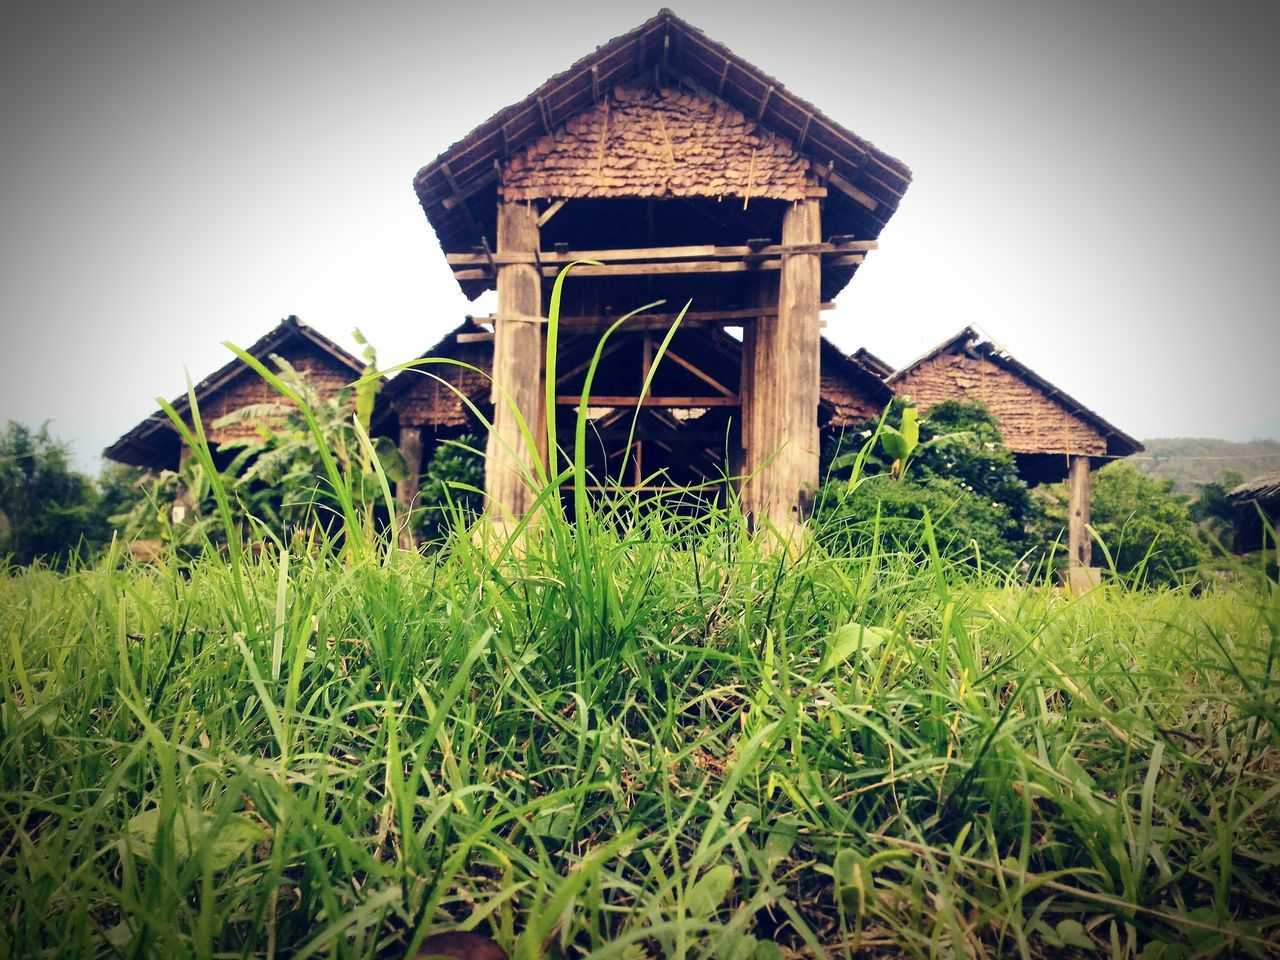 architecture, built structure, grass, building exterior, house, field, low angle view, clear sky, outdoors, day, sky, landscape, plant, nature, growth, barn, no people, animal themes, mammal